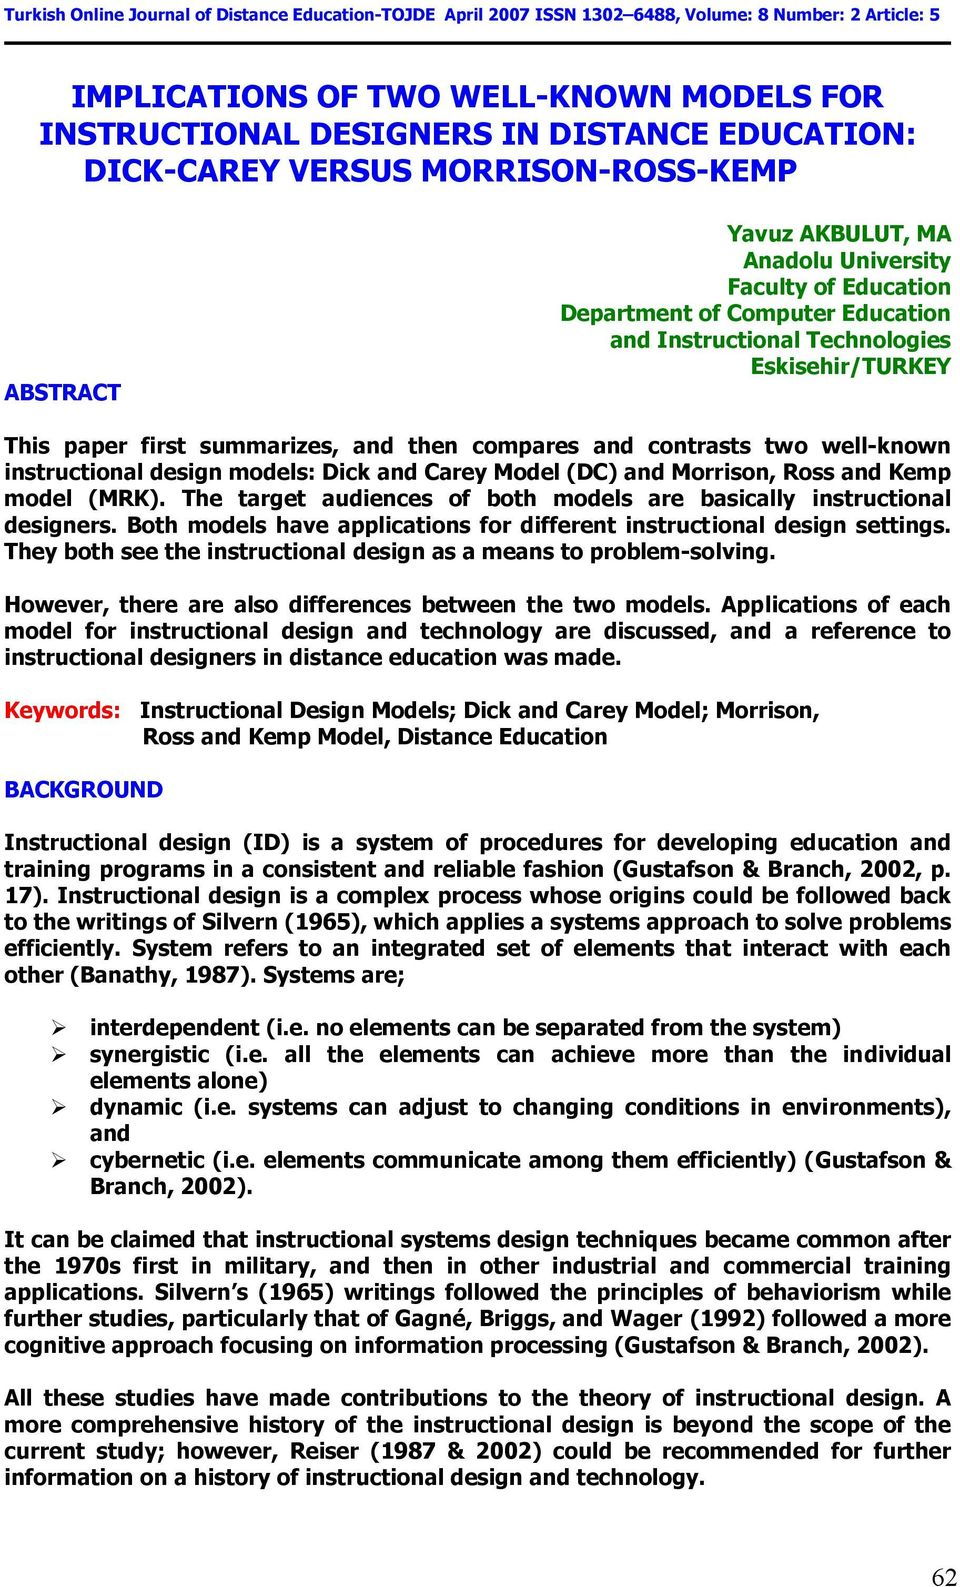 Implications Of Two Well Known Models For Instructional Designers In Distance Education Dick Carey Versus Morrison Ross Kemp Pdf Free Download